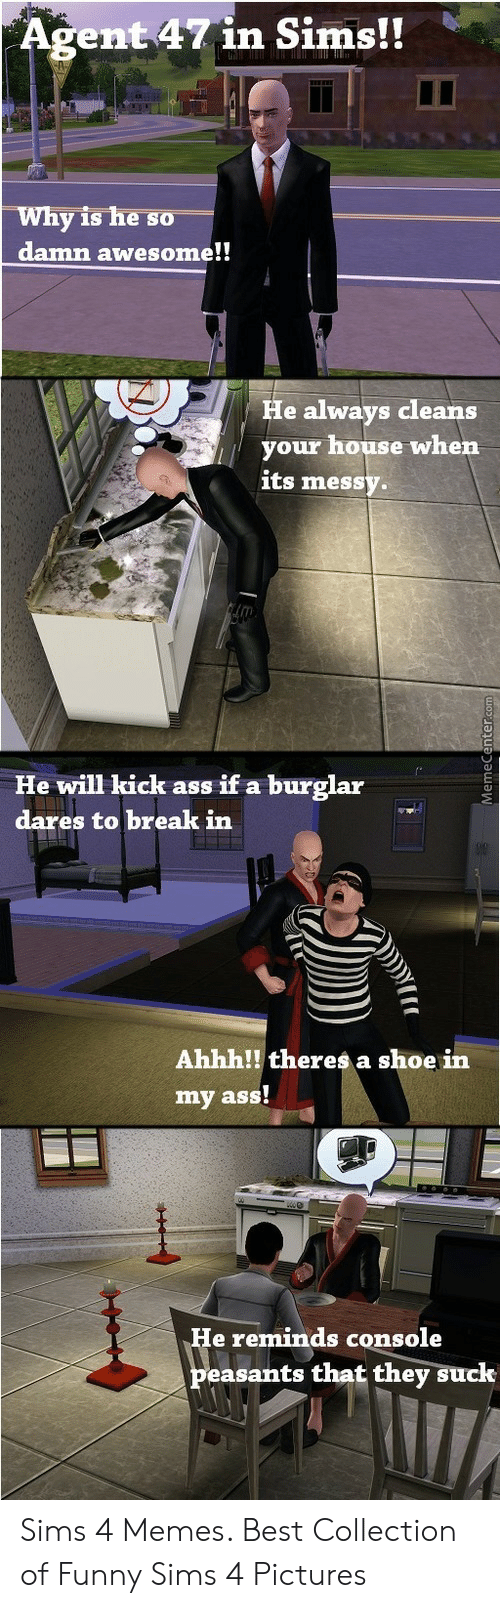 Funny, Memes, and Best: gent 47in Sims!!  y is he so  damn awesome!!  Wh  He always cleans  your house when  its messy  He will kick ass if a burglar  dares to break in  Ahhh!! theres a shoe in  my ass!  e reminds console  peasants that they suck Sims 4 Memes. Best Collection of Funny Sims 4 Pictures